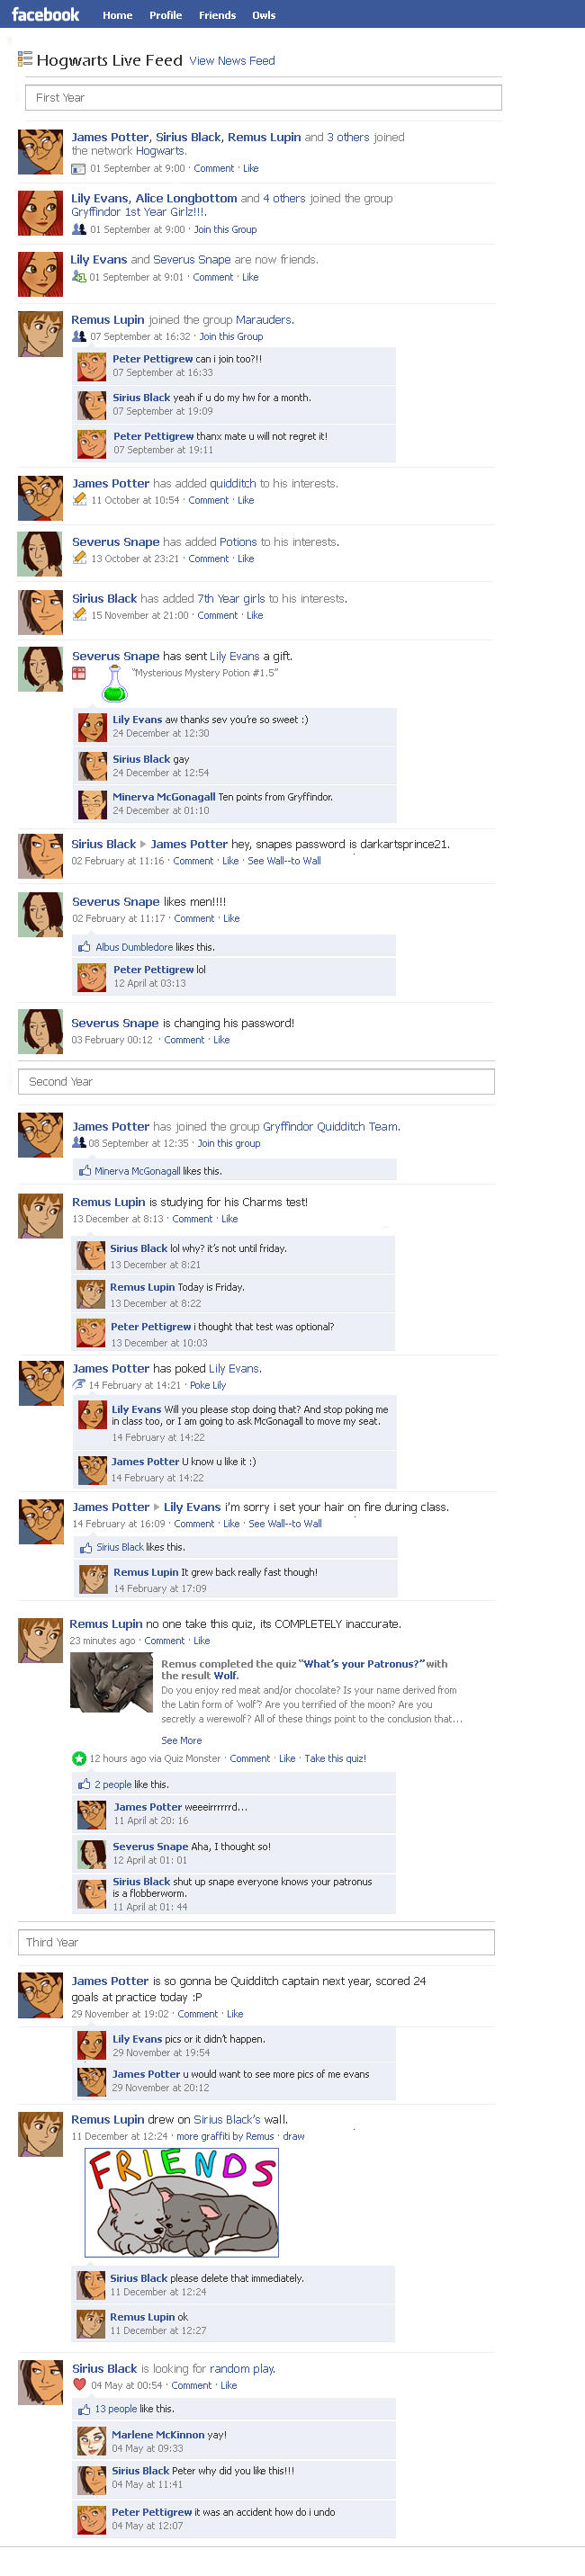 Marauders Facebook Timeline 1 by julvett